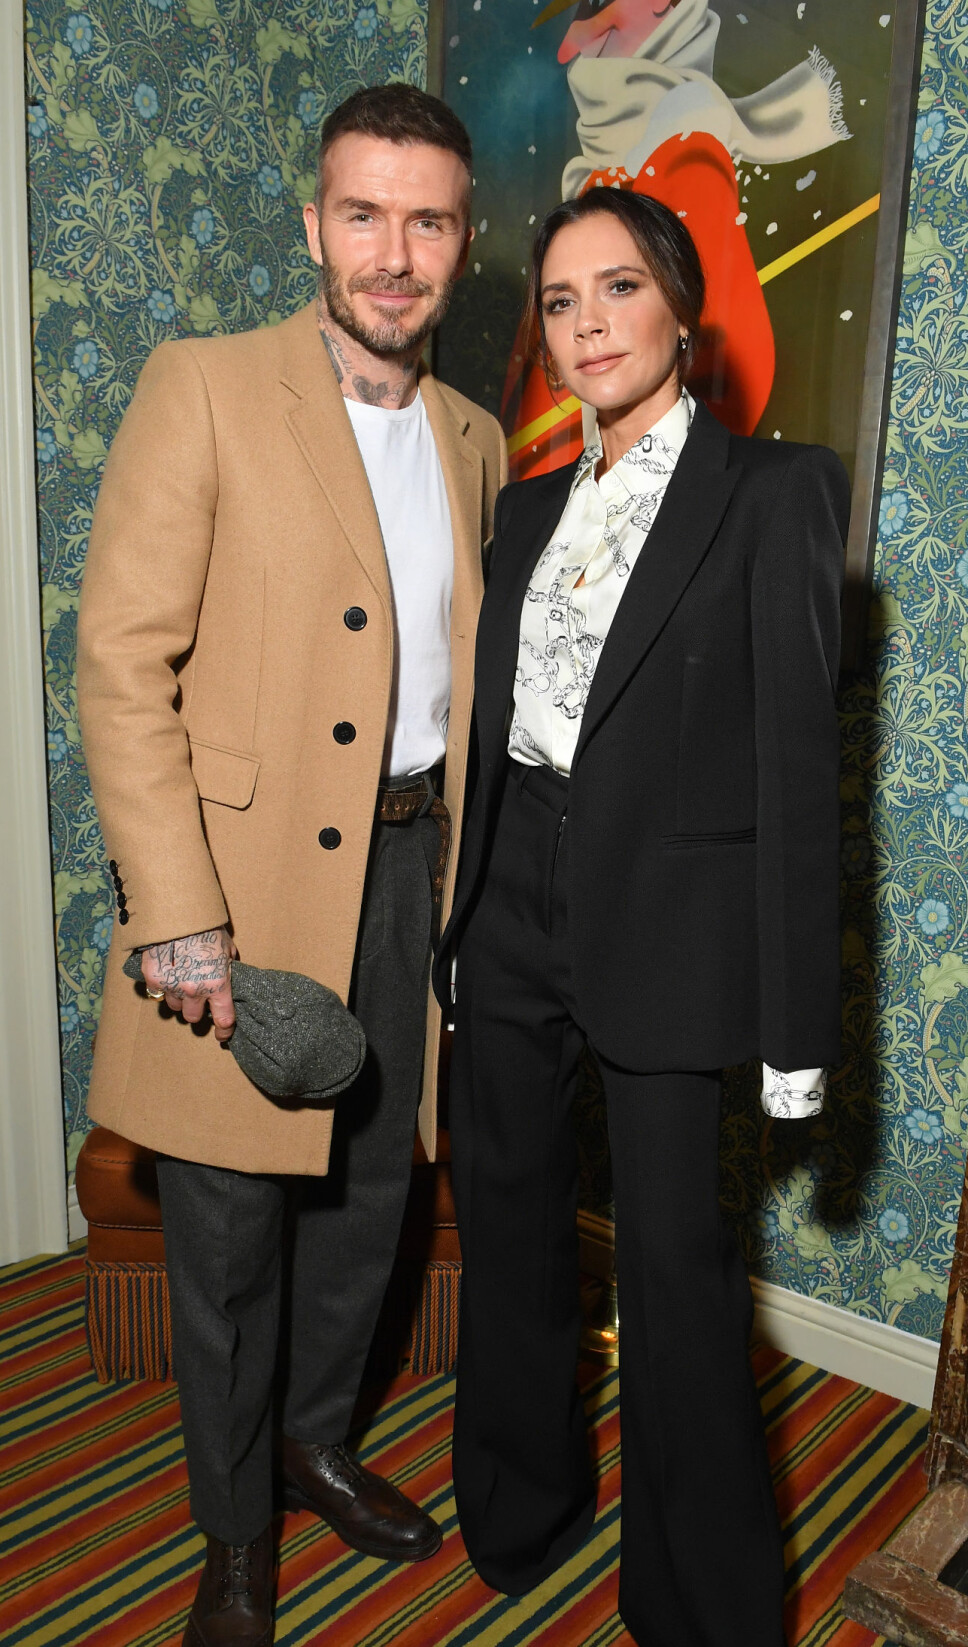 Victoria og David er ofte å se på offentlige tilstelninger sammen. Her fra etterfesten for Victoria Beckham x YouTube Fashion & Beauty under London Fashion Week i februar 2019.